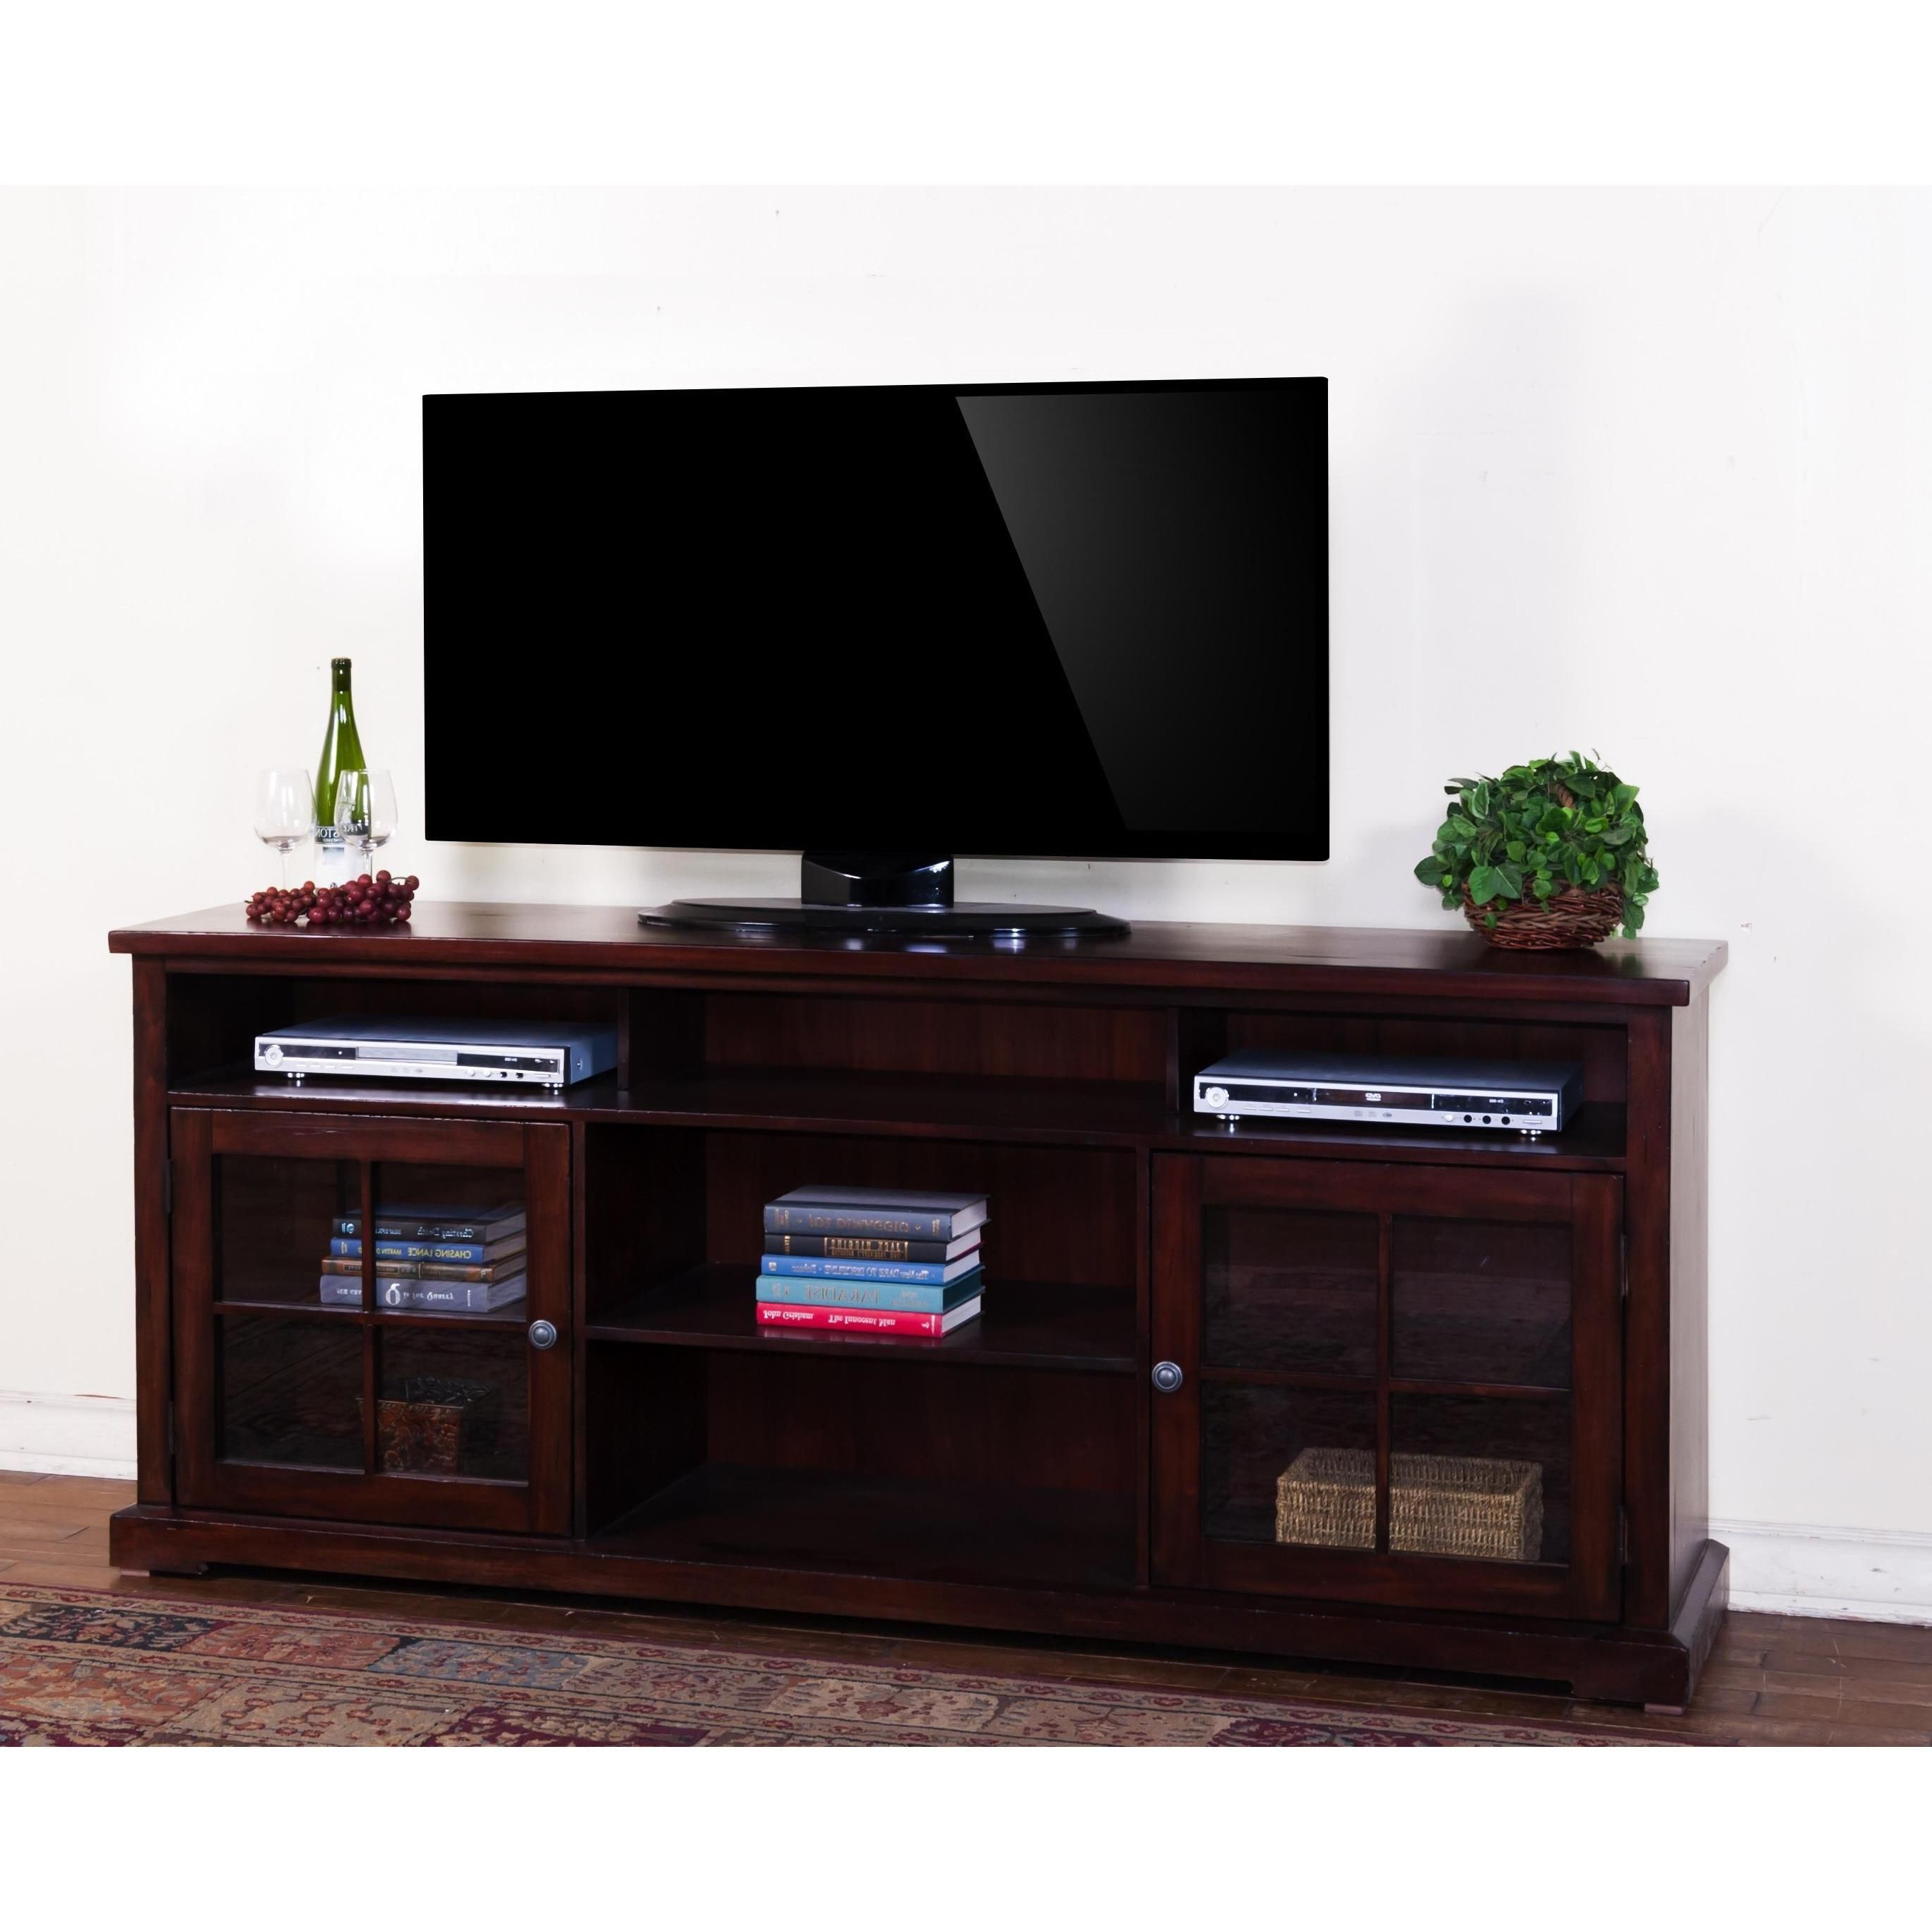 Sunny Designs Vineyard 78 Inch Tv Console (Tv Console), Brown Within Newest Mahogany Tv Cabinets (Gallery 16 of 20)